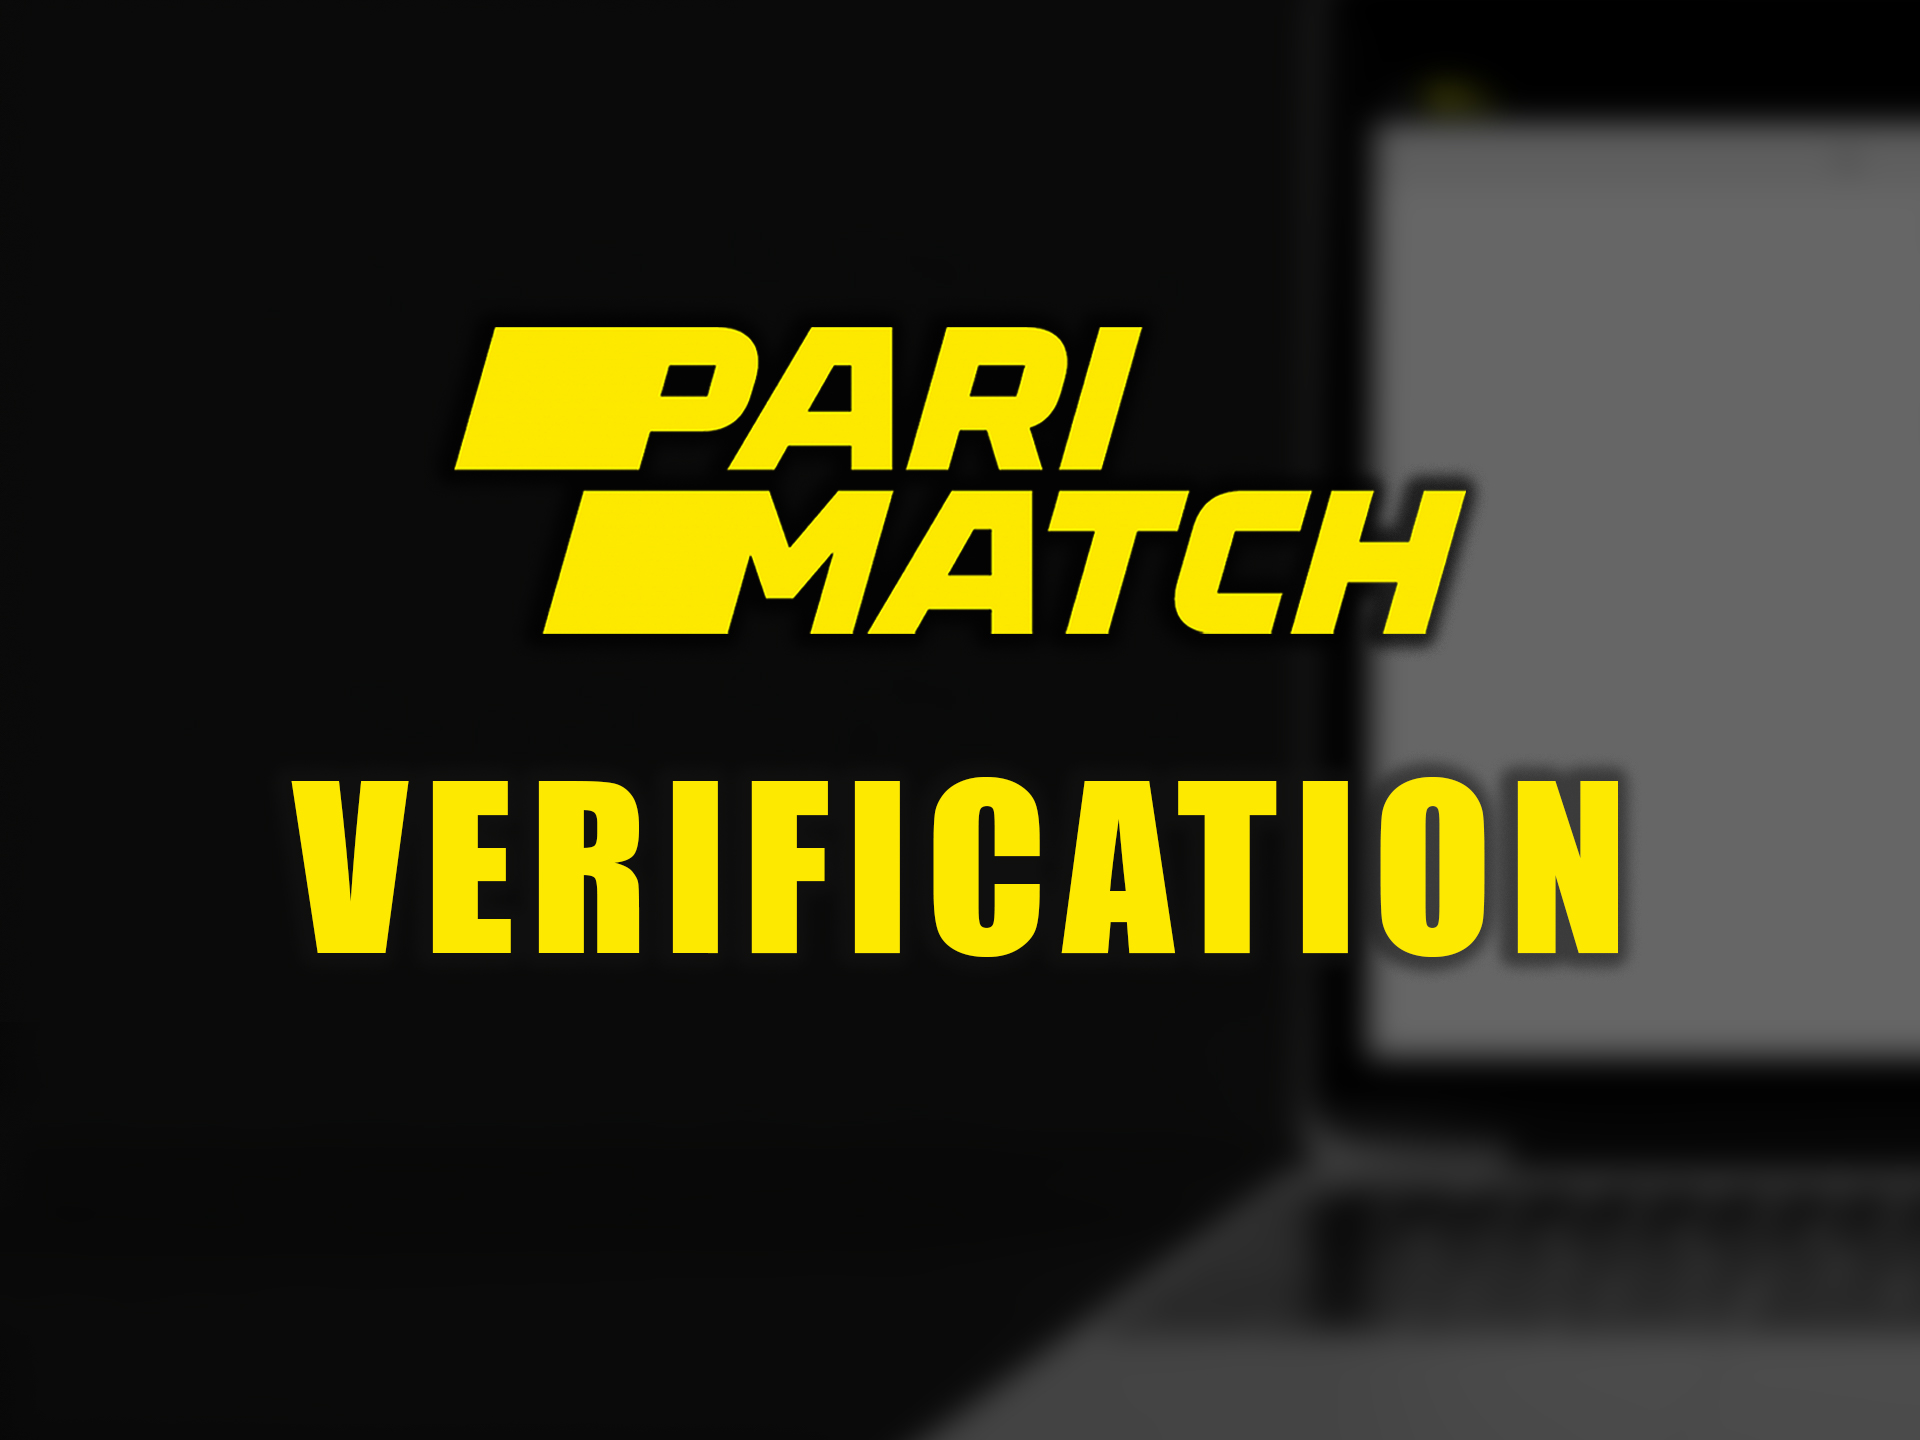 After registration, you need to verify your account before placing bets.